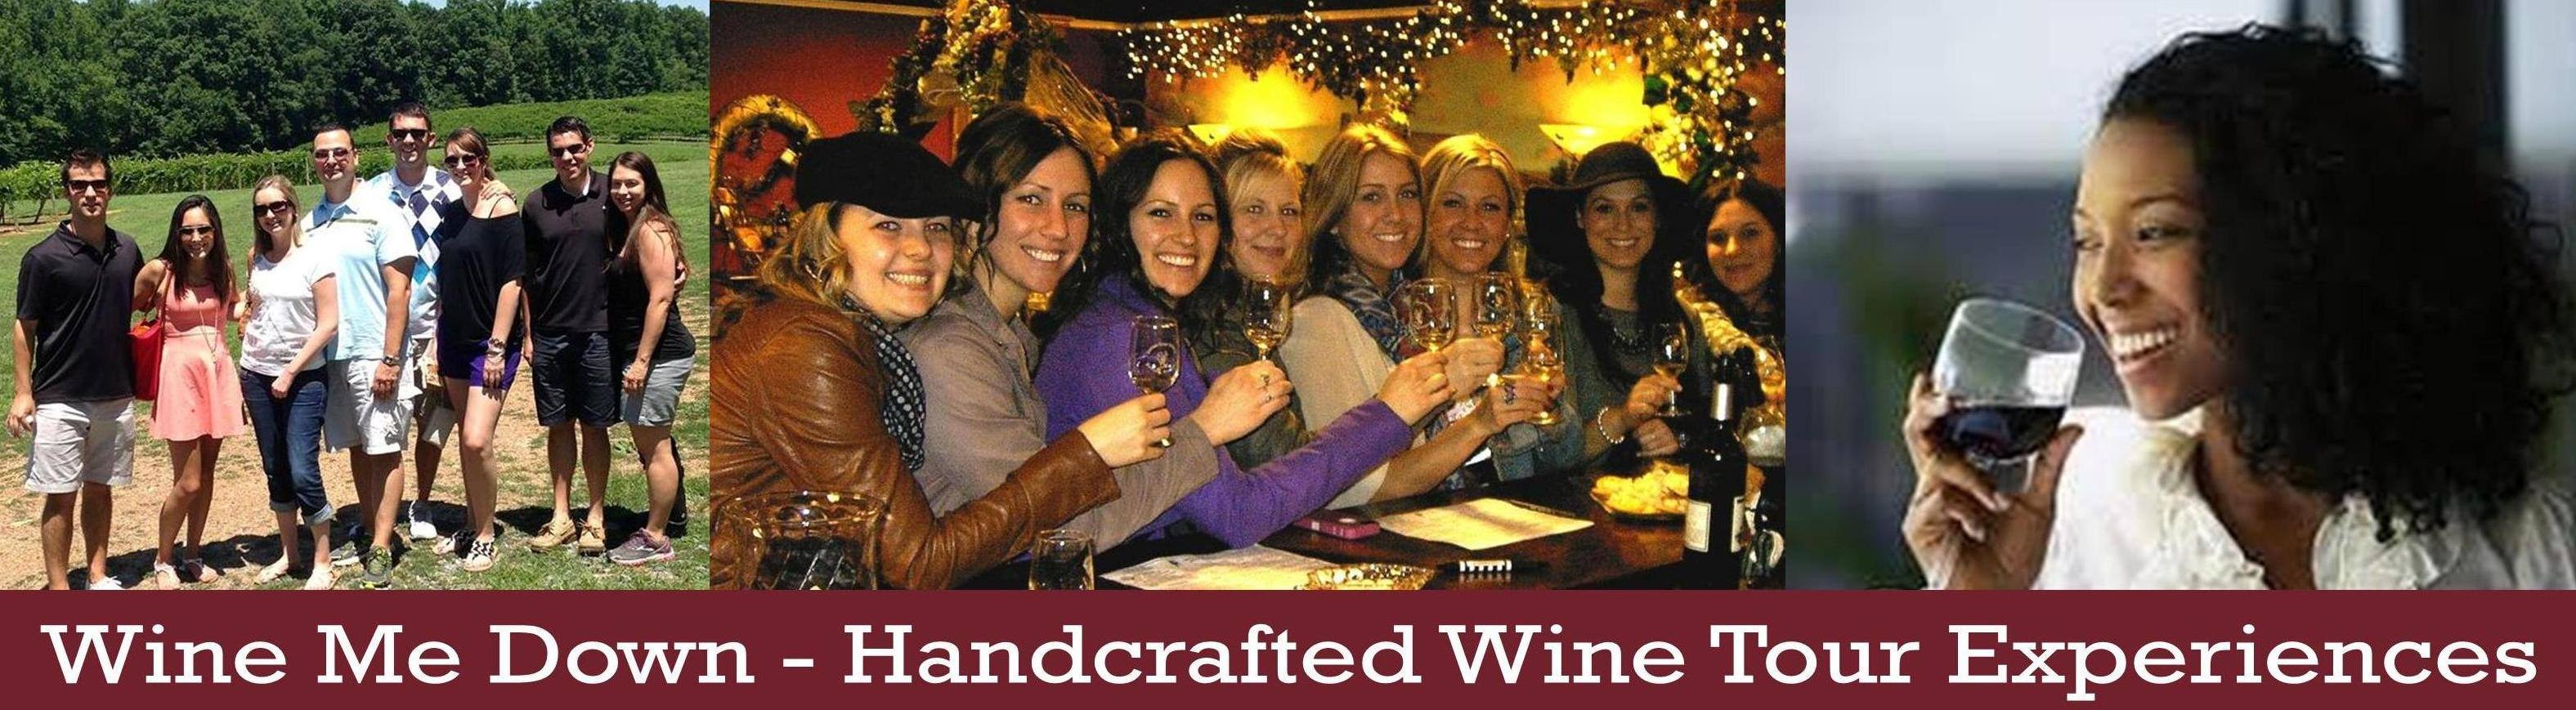 Wine Me Down - Handcrafted Wine Tasting Tour Experiences